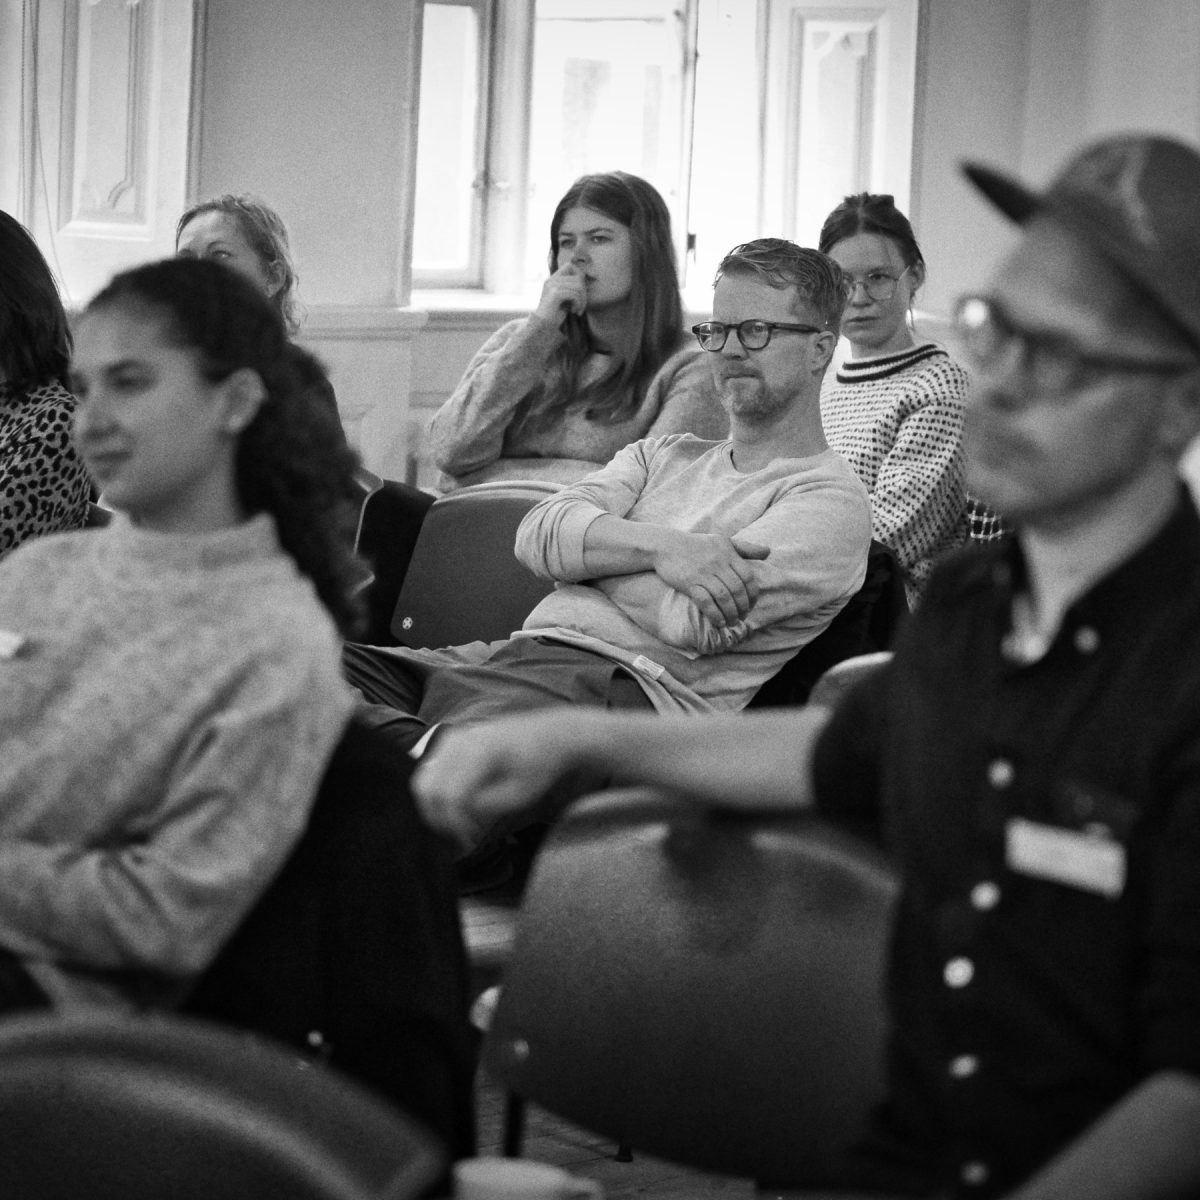 Event photography: Creative Mornings Sep 19 - stuff for thought